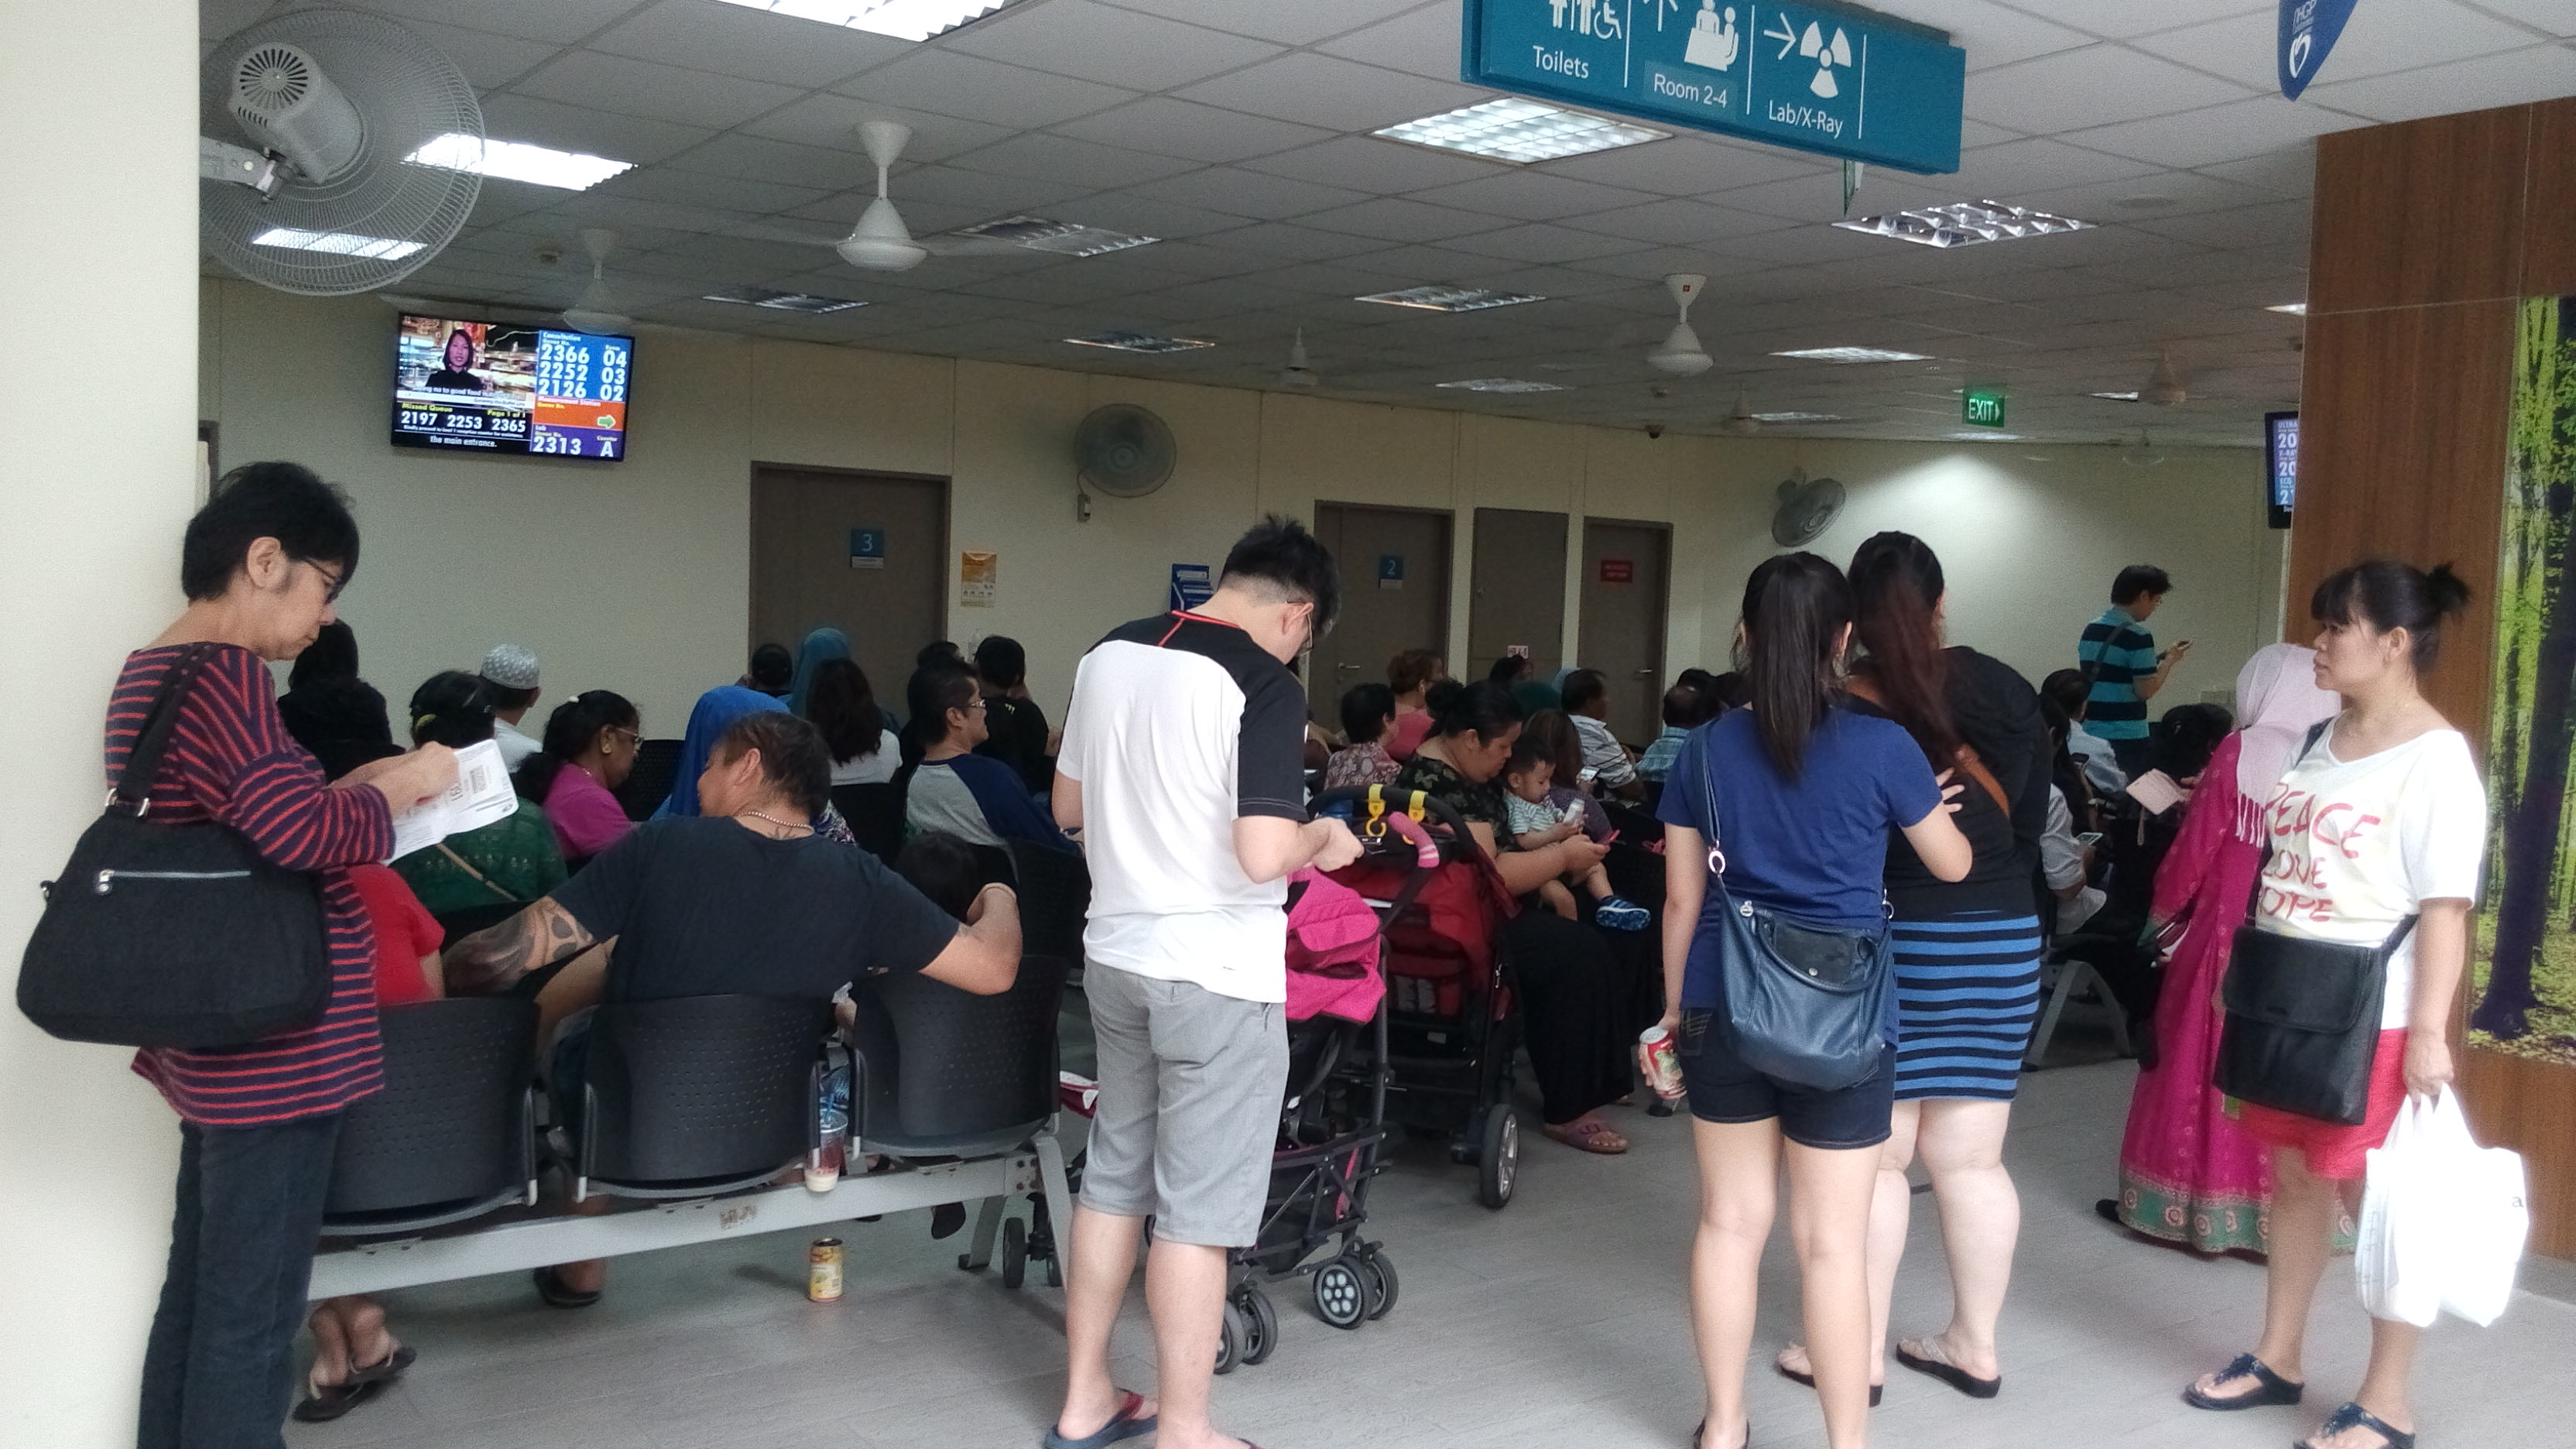 SingHealth cyber attack allegedly compromised the personal particulars of about 1.5 million patients, including Prime Minister Lee Hsien Loong's personal data and outpatient prescriptions. Photo courtesy: Wikimedia